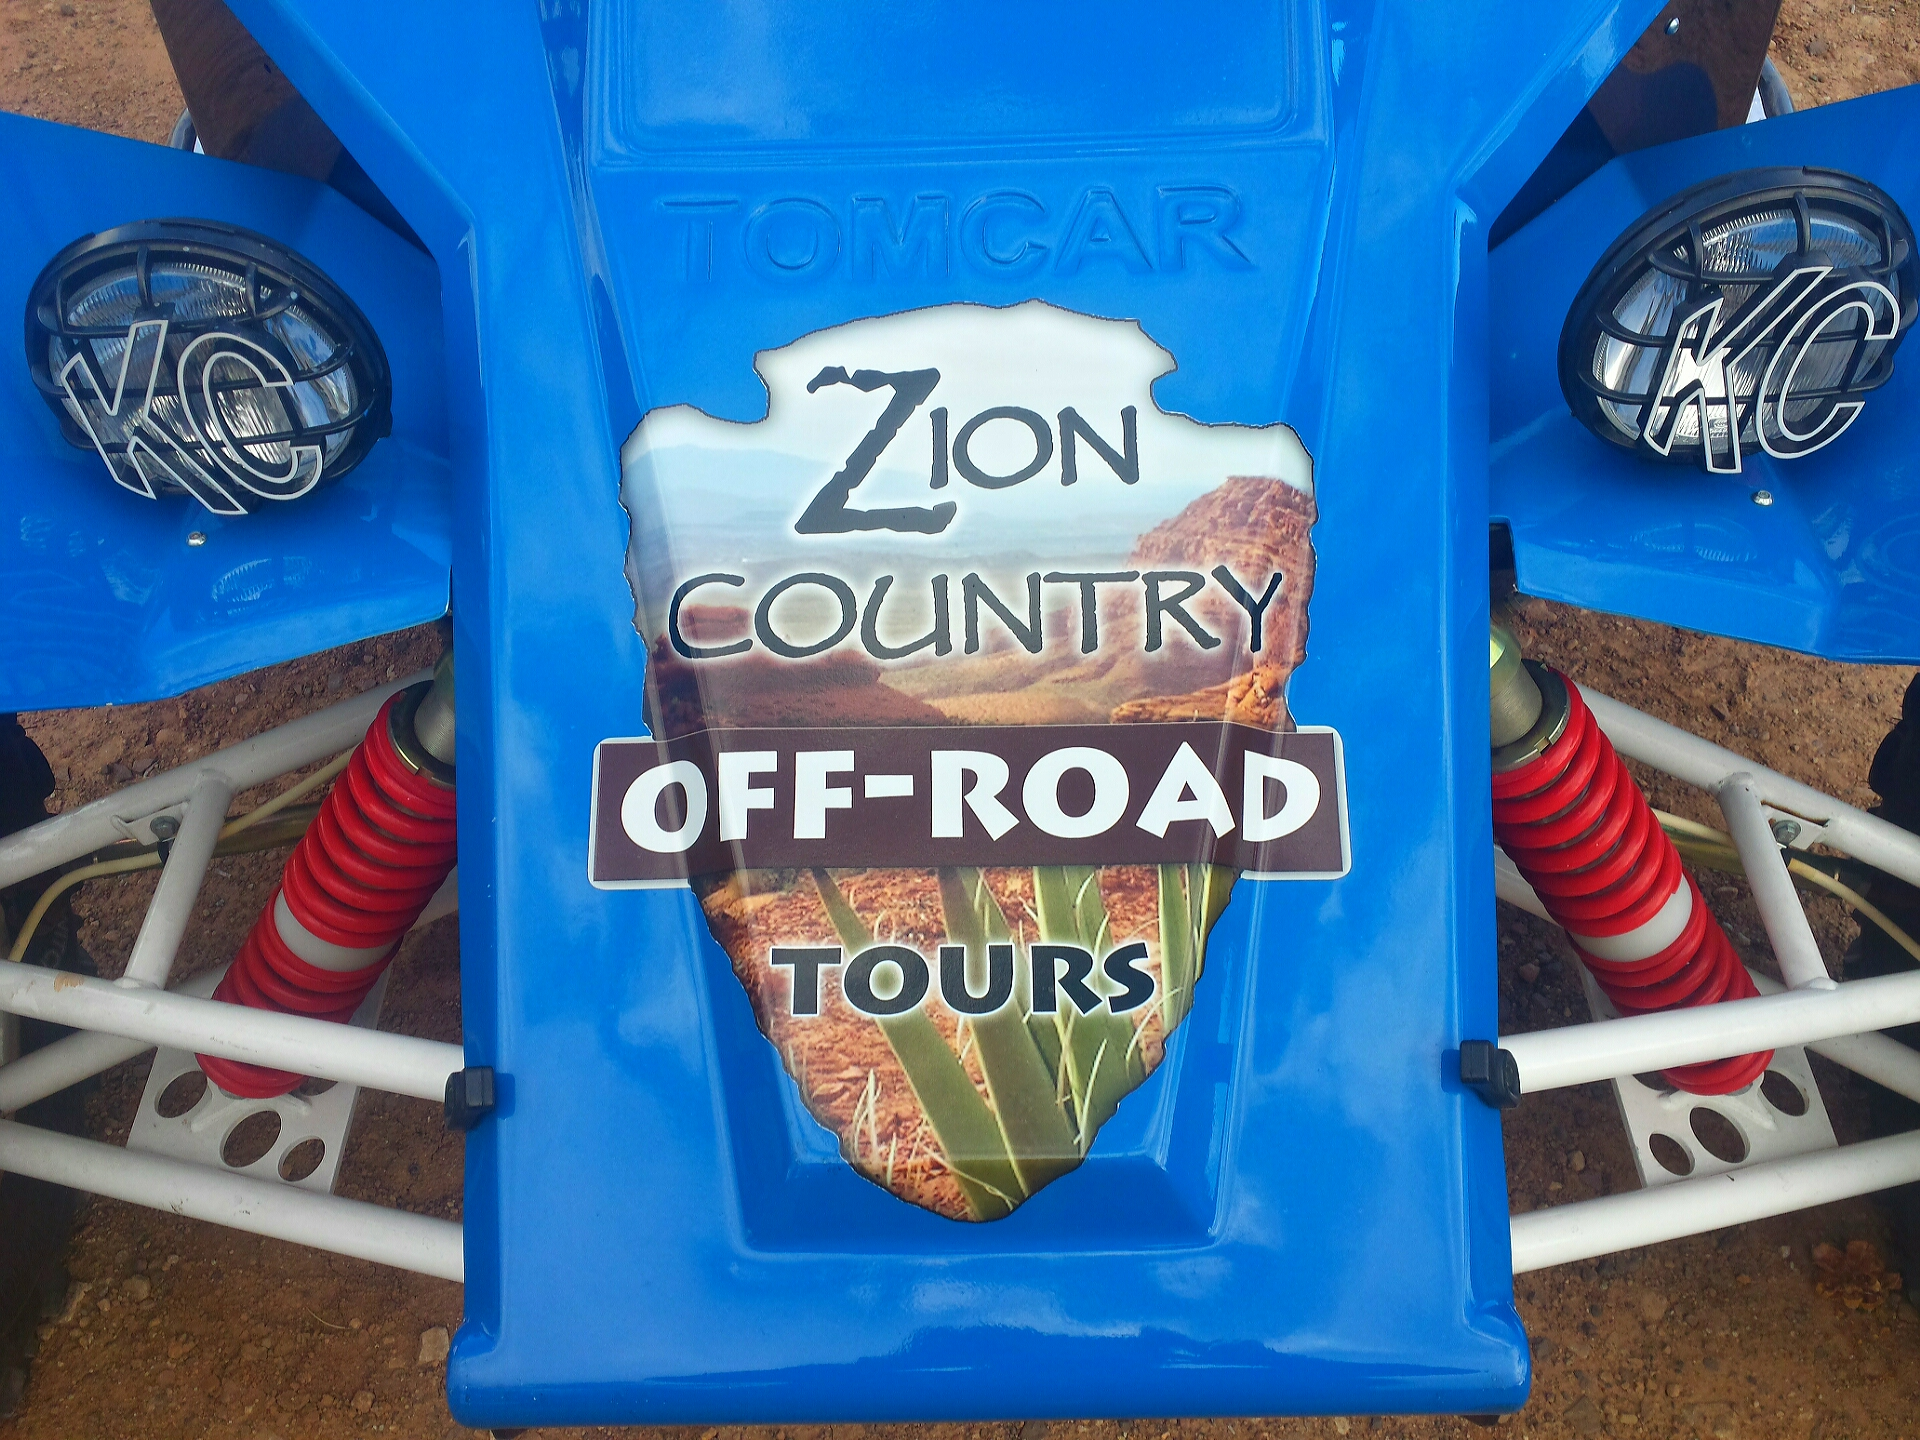 Gallery zion atv jeep for Zion motors st george